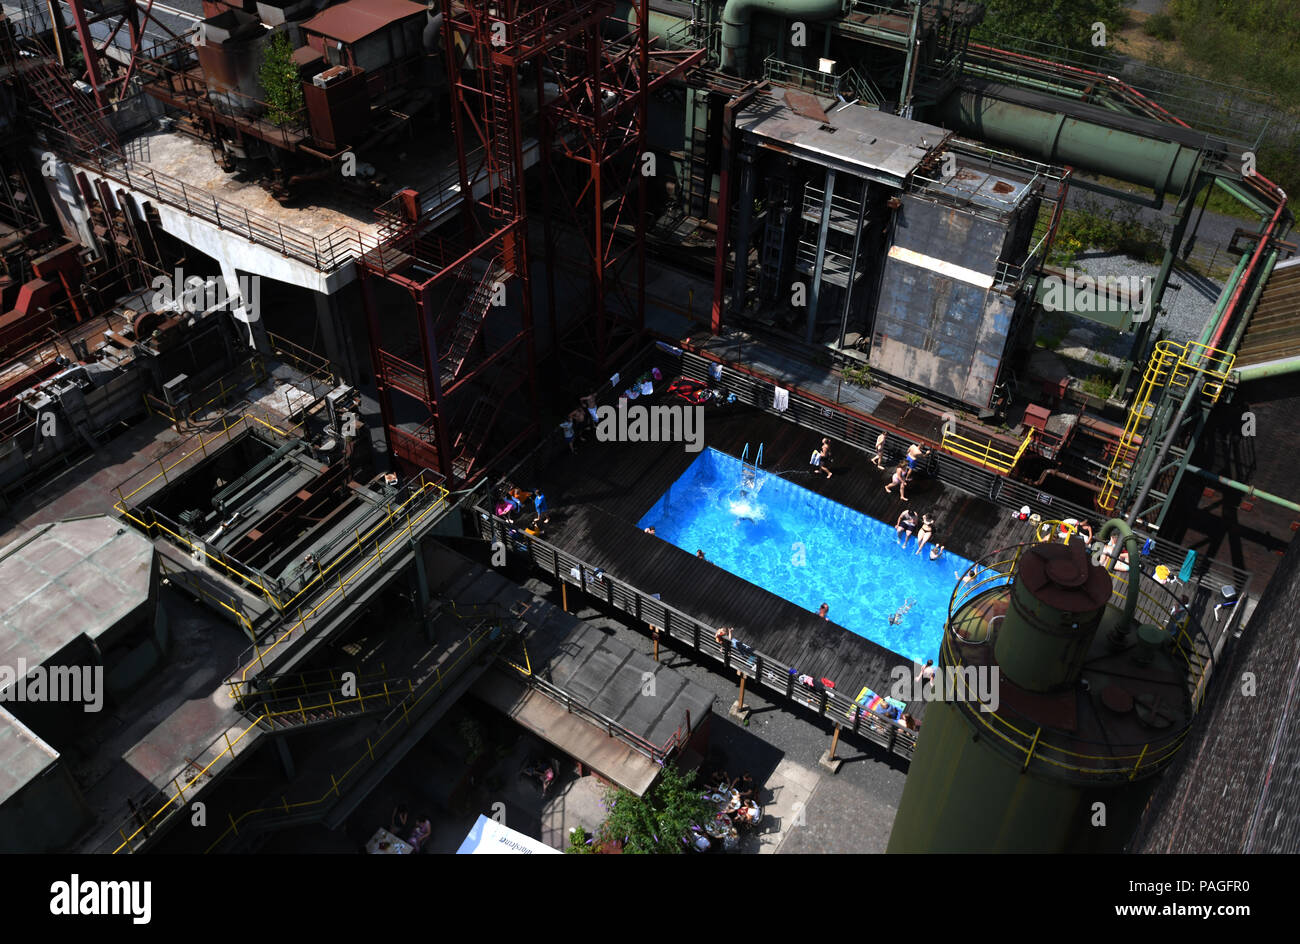 Essen, Germany. 22nd July, 2018. The works swimming pool on the premises of the coking plant of the Zollverein Coal Mine Industrial Complex (Zeche Zollverein). The Frankfurt artists Dirk Paschke and Daniel Milohnic created the work swimming pool in 2001 in the course of the art project 'Zeitgenoessische Kunst und Kritik' (lit. contemporary art and criticism). Credit: Ina Fassbender/dpa - ATTENTION: editorial use only in connection with the latest coverage and only if the credit mentioned above is referenced in full/dpa/Alamy Live News - Stock Image